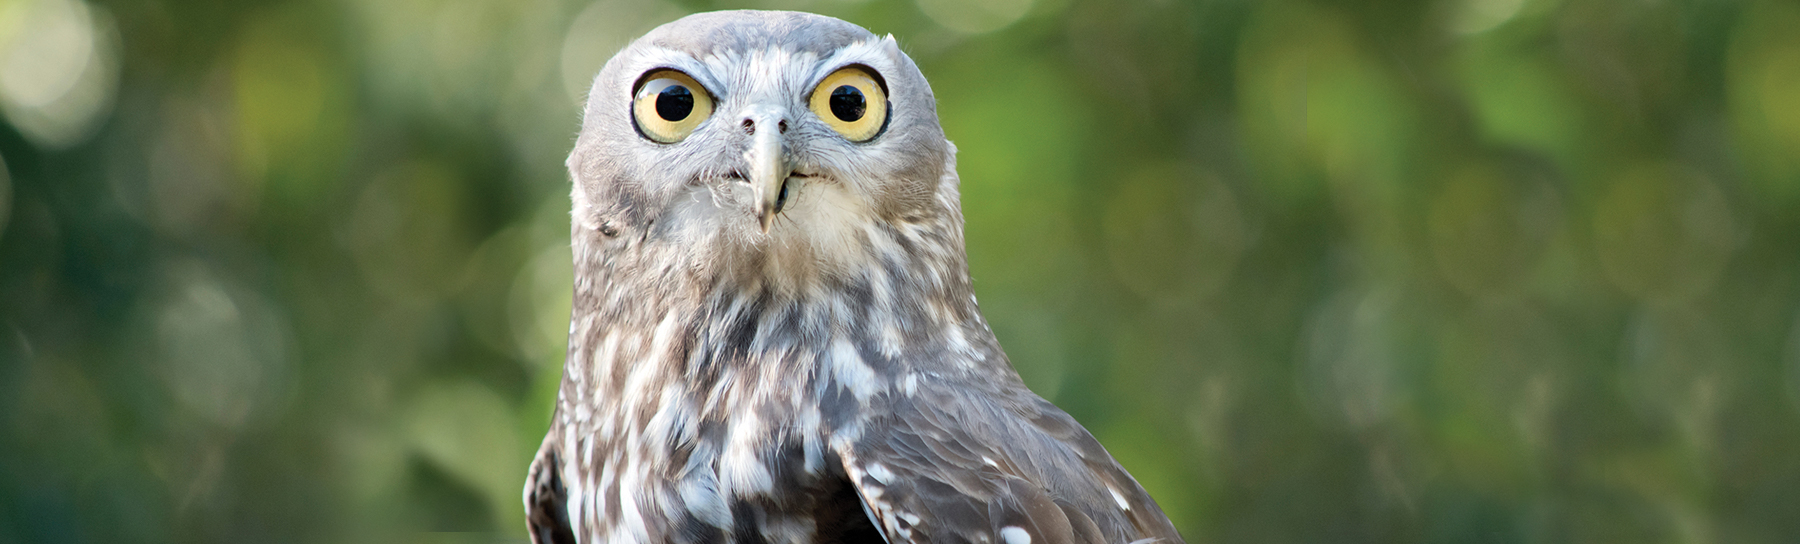 Owl-Donate-Page-Banner.jpg